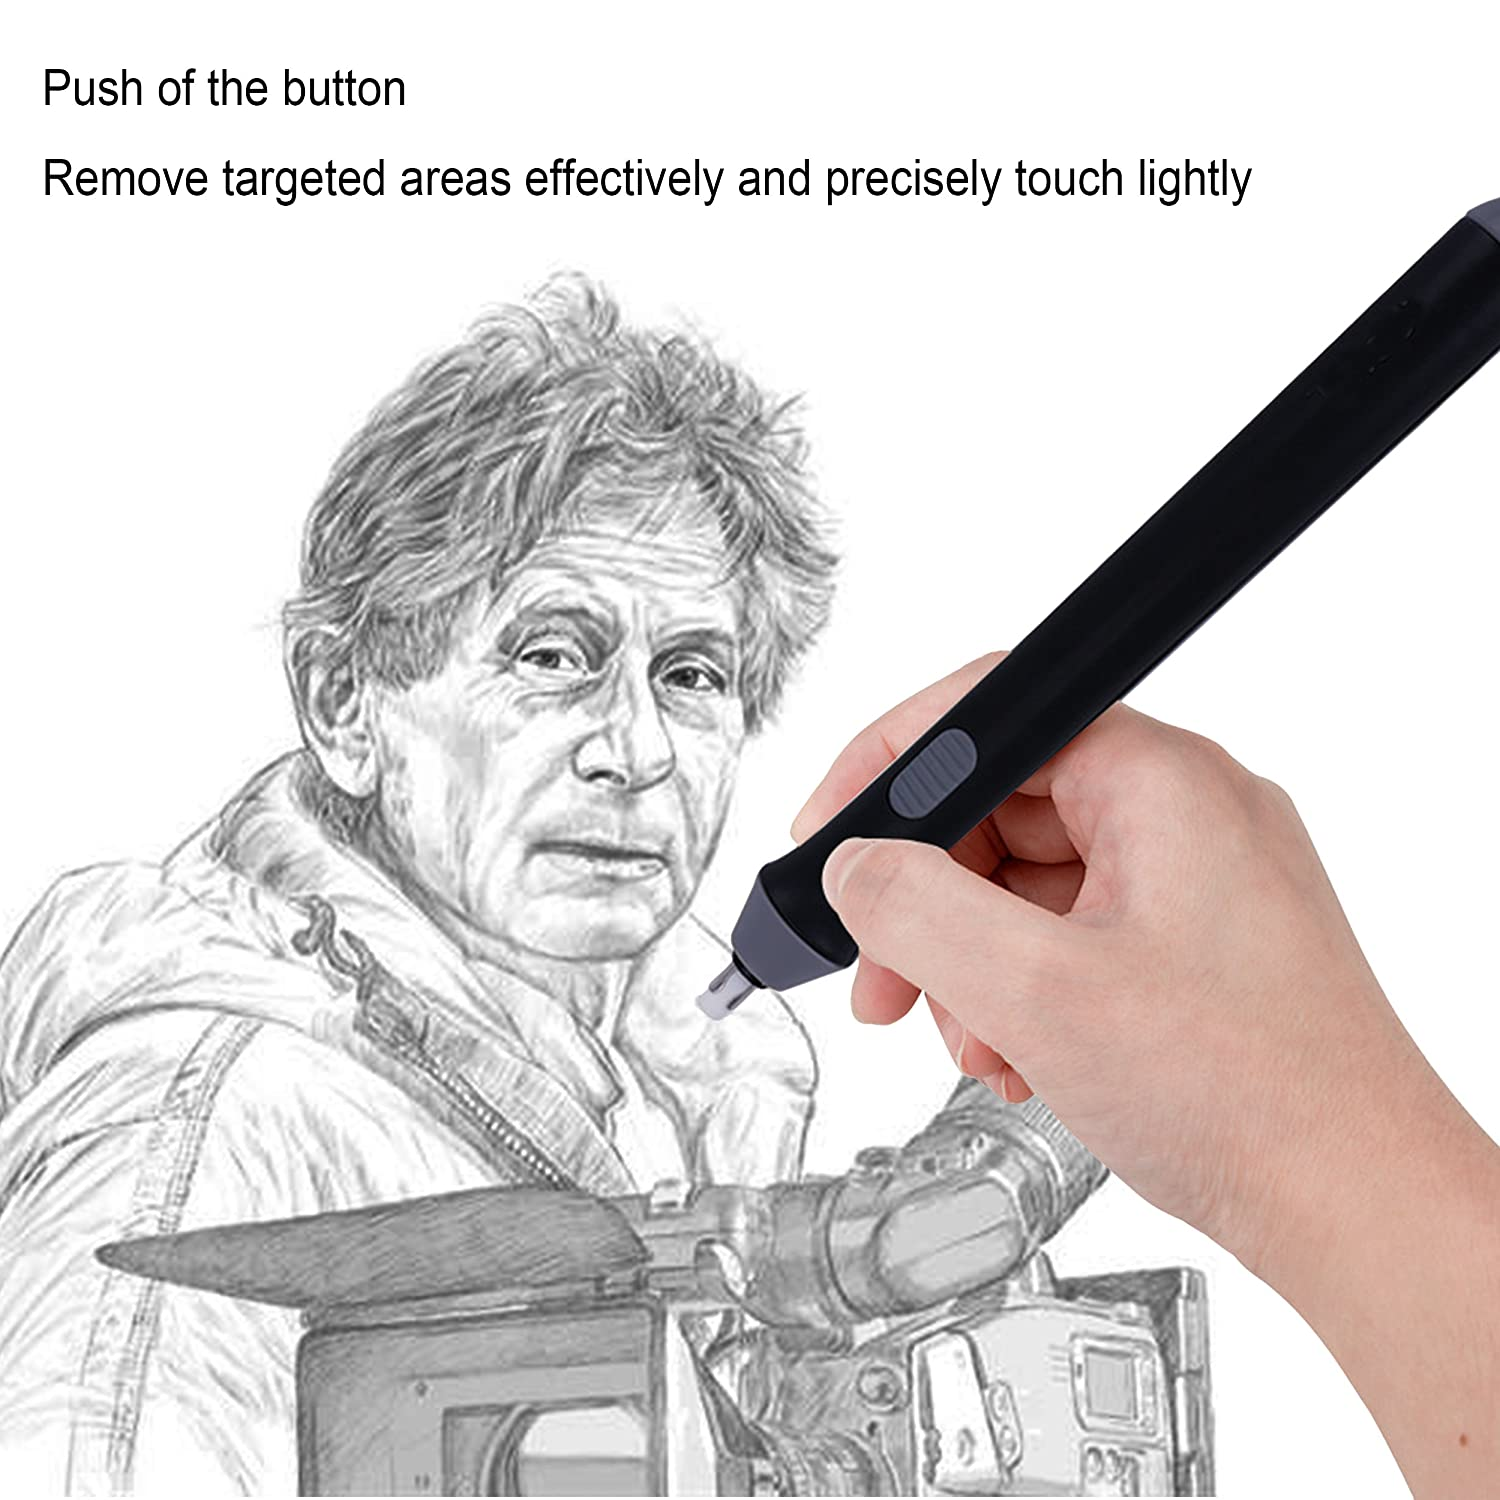 Drafting(Black) Painting Sketching iztor Electric Eraser Battery Operated Pencil Auto Eraser for Artist Drawing